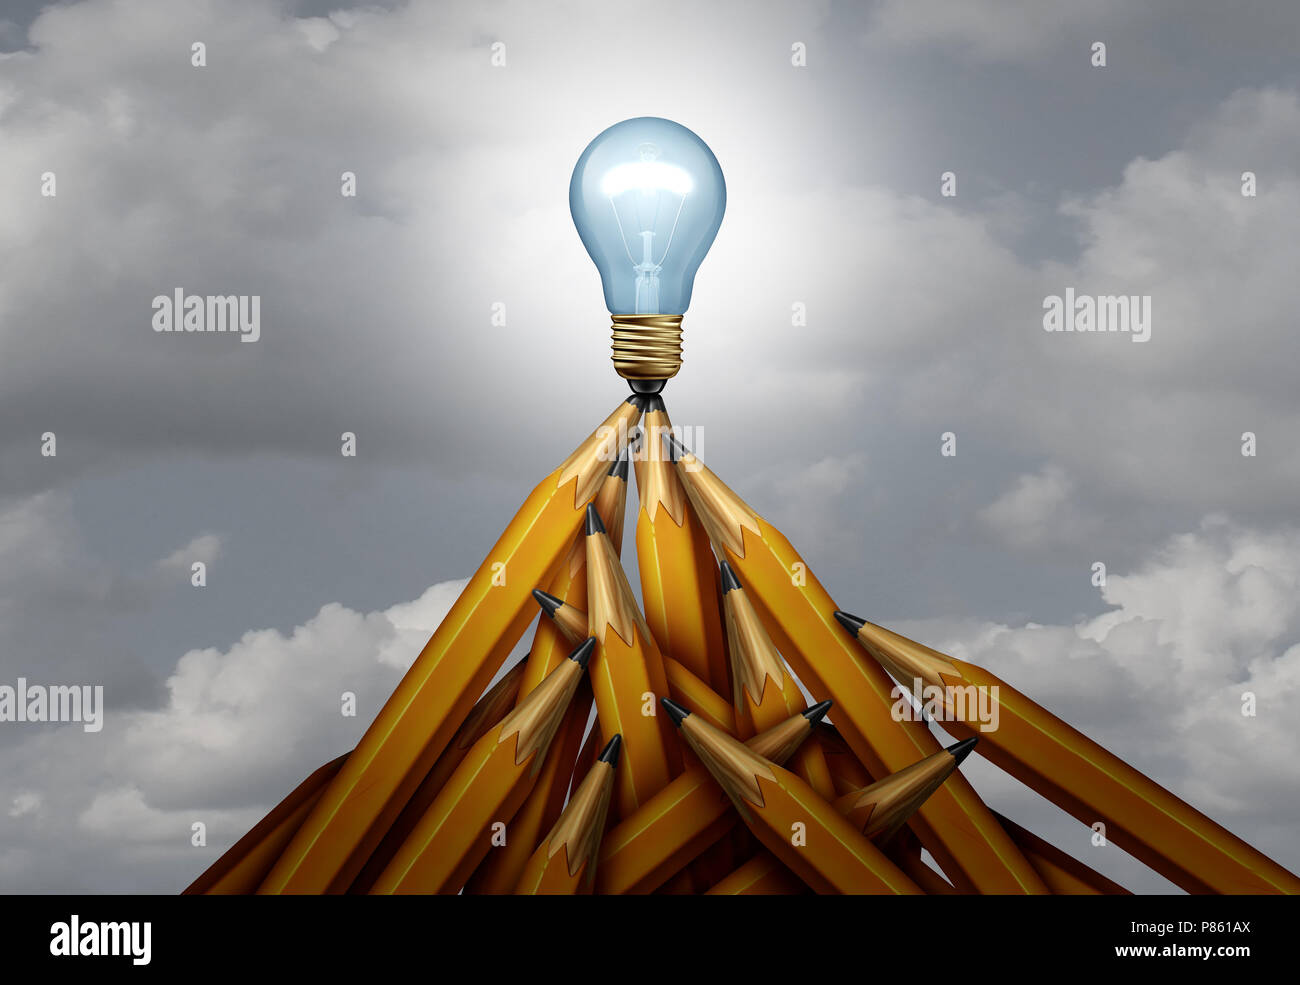 Creative peak and creativity height of success concept as a group of pencils shaped as a high mountain with a glowing light bulb on top. - Stock Image